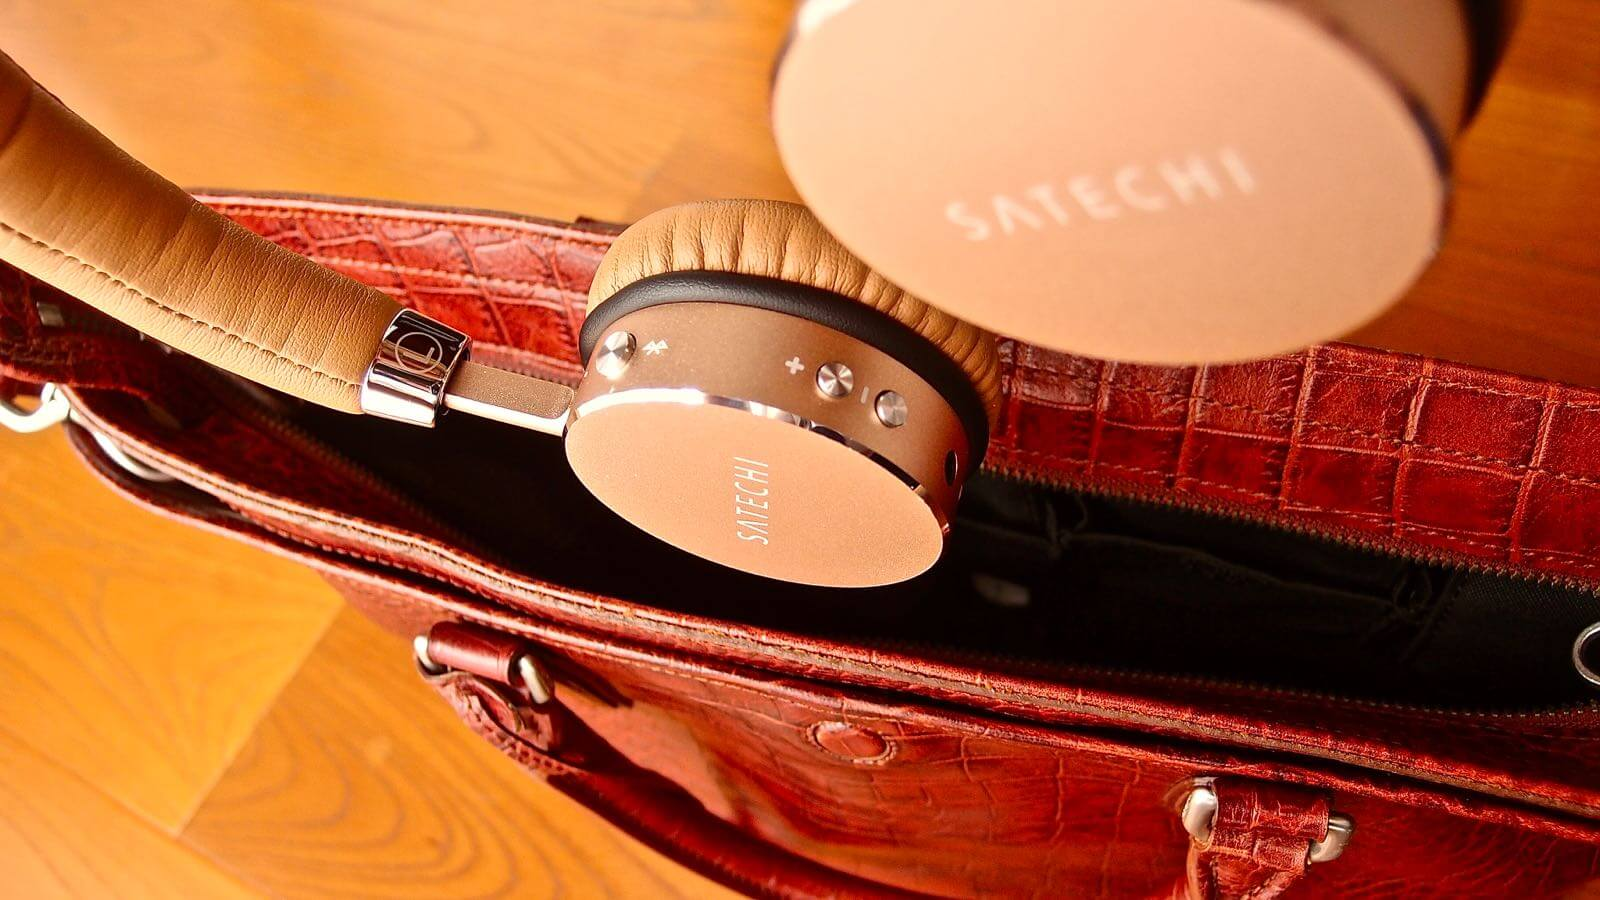 0157 Satechi wireless headphone ST AHP Review 23